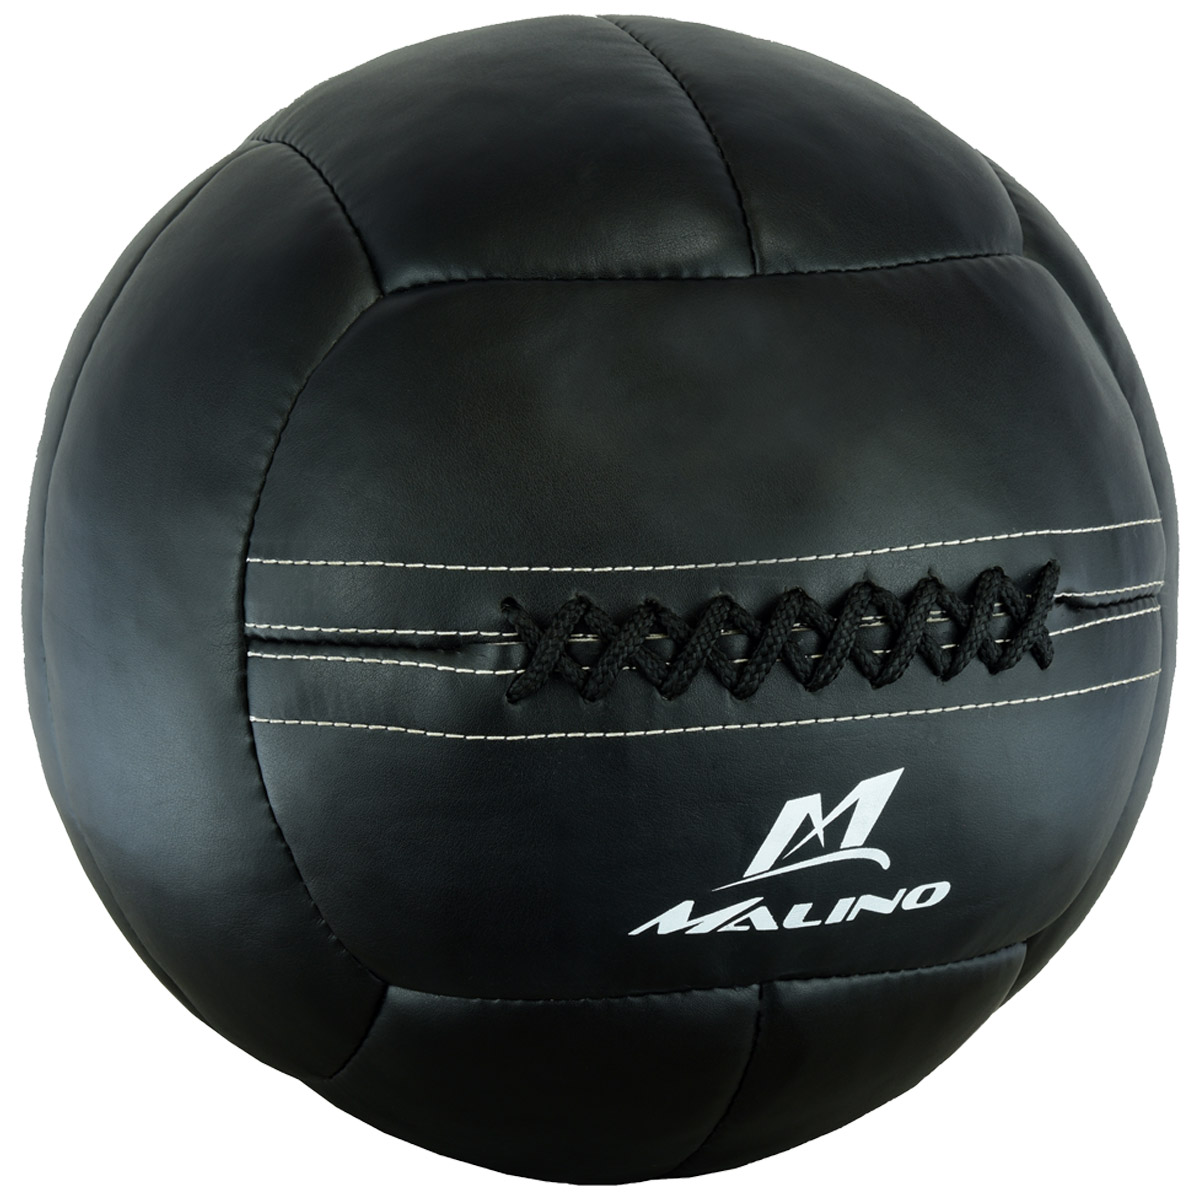 Malino Wall Ball Black